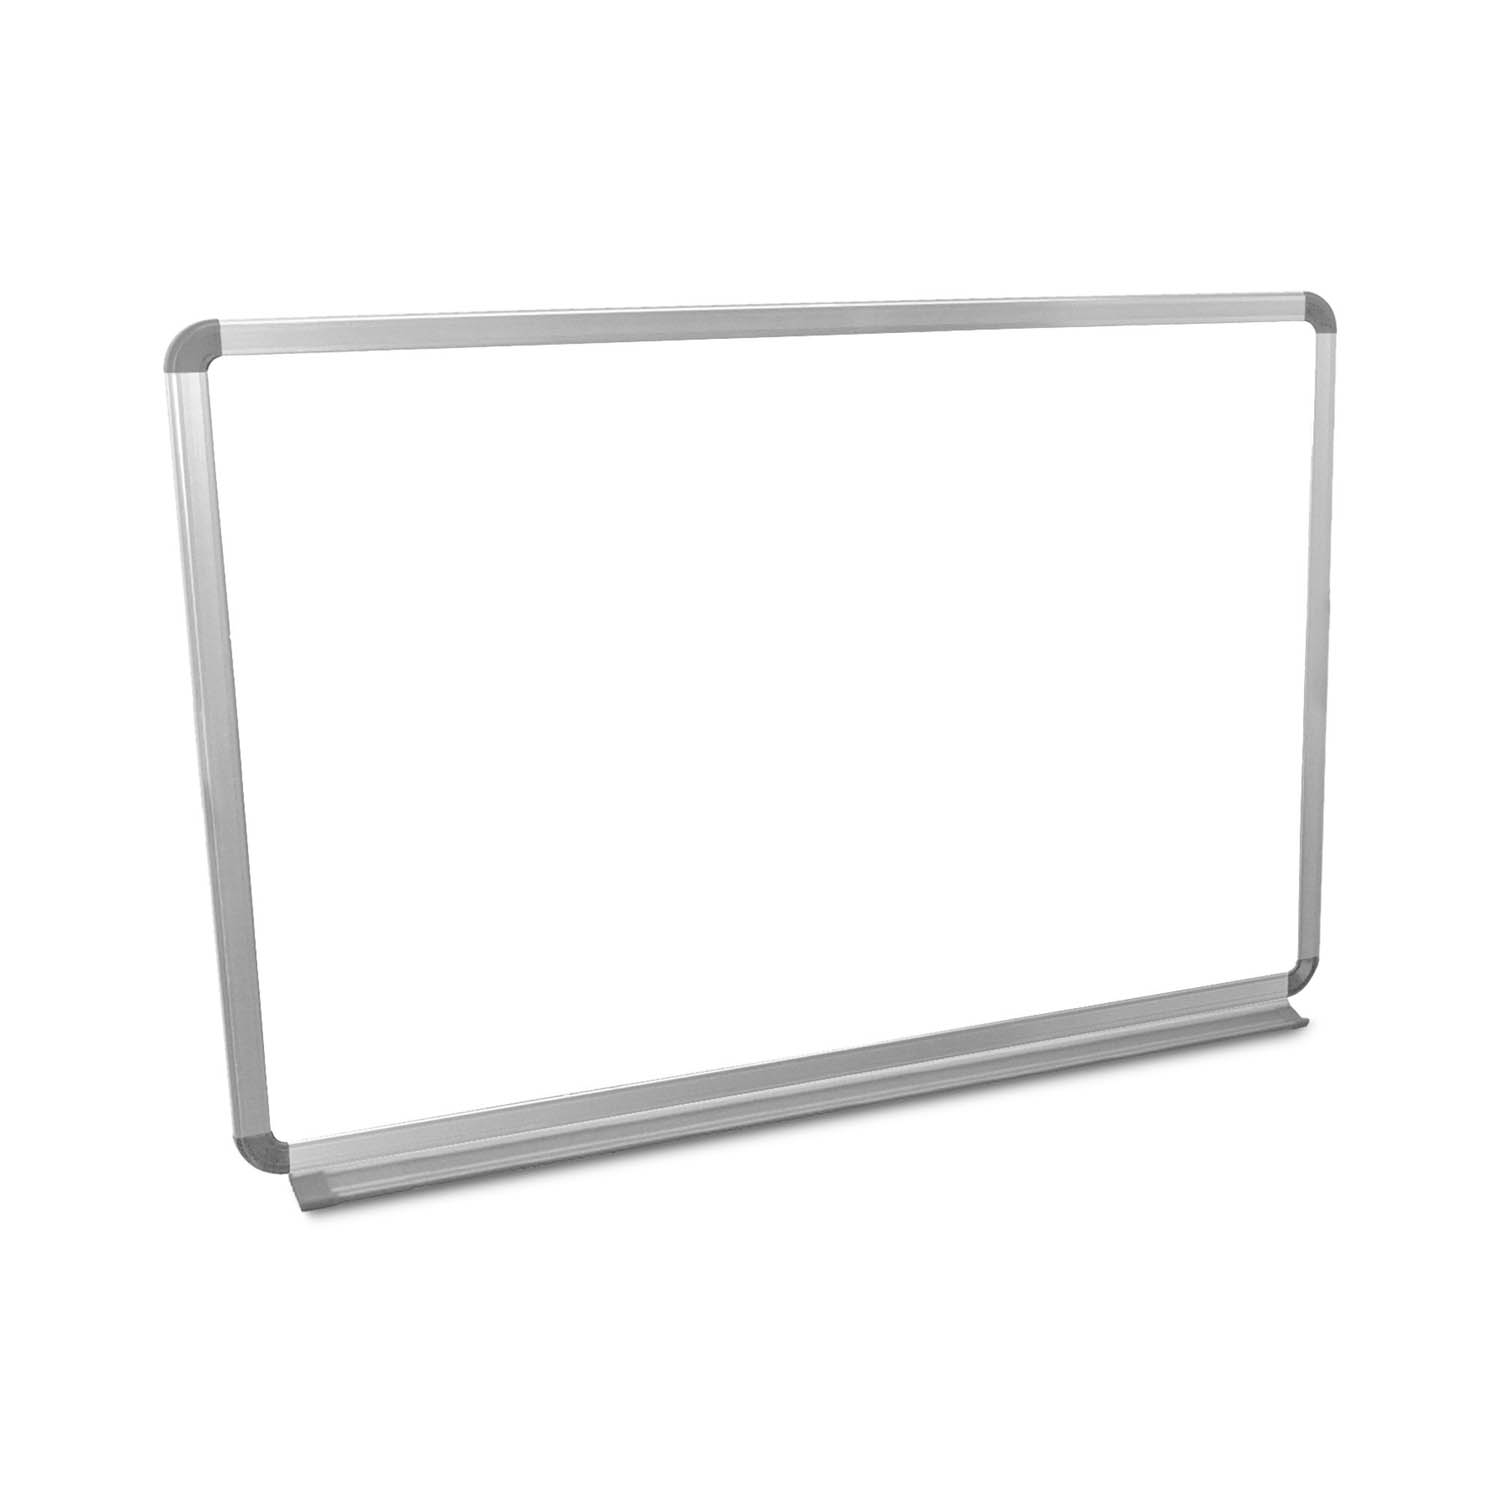 Offex Universal Dry Erase Classroom Wallmount Magnetic Whiteboard With Aluminium Frame And Tray, 36